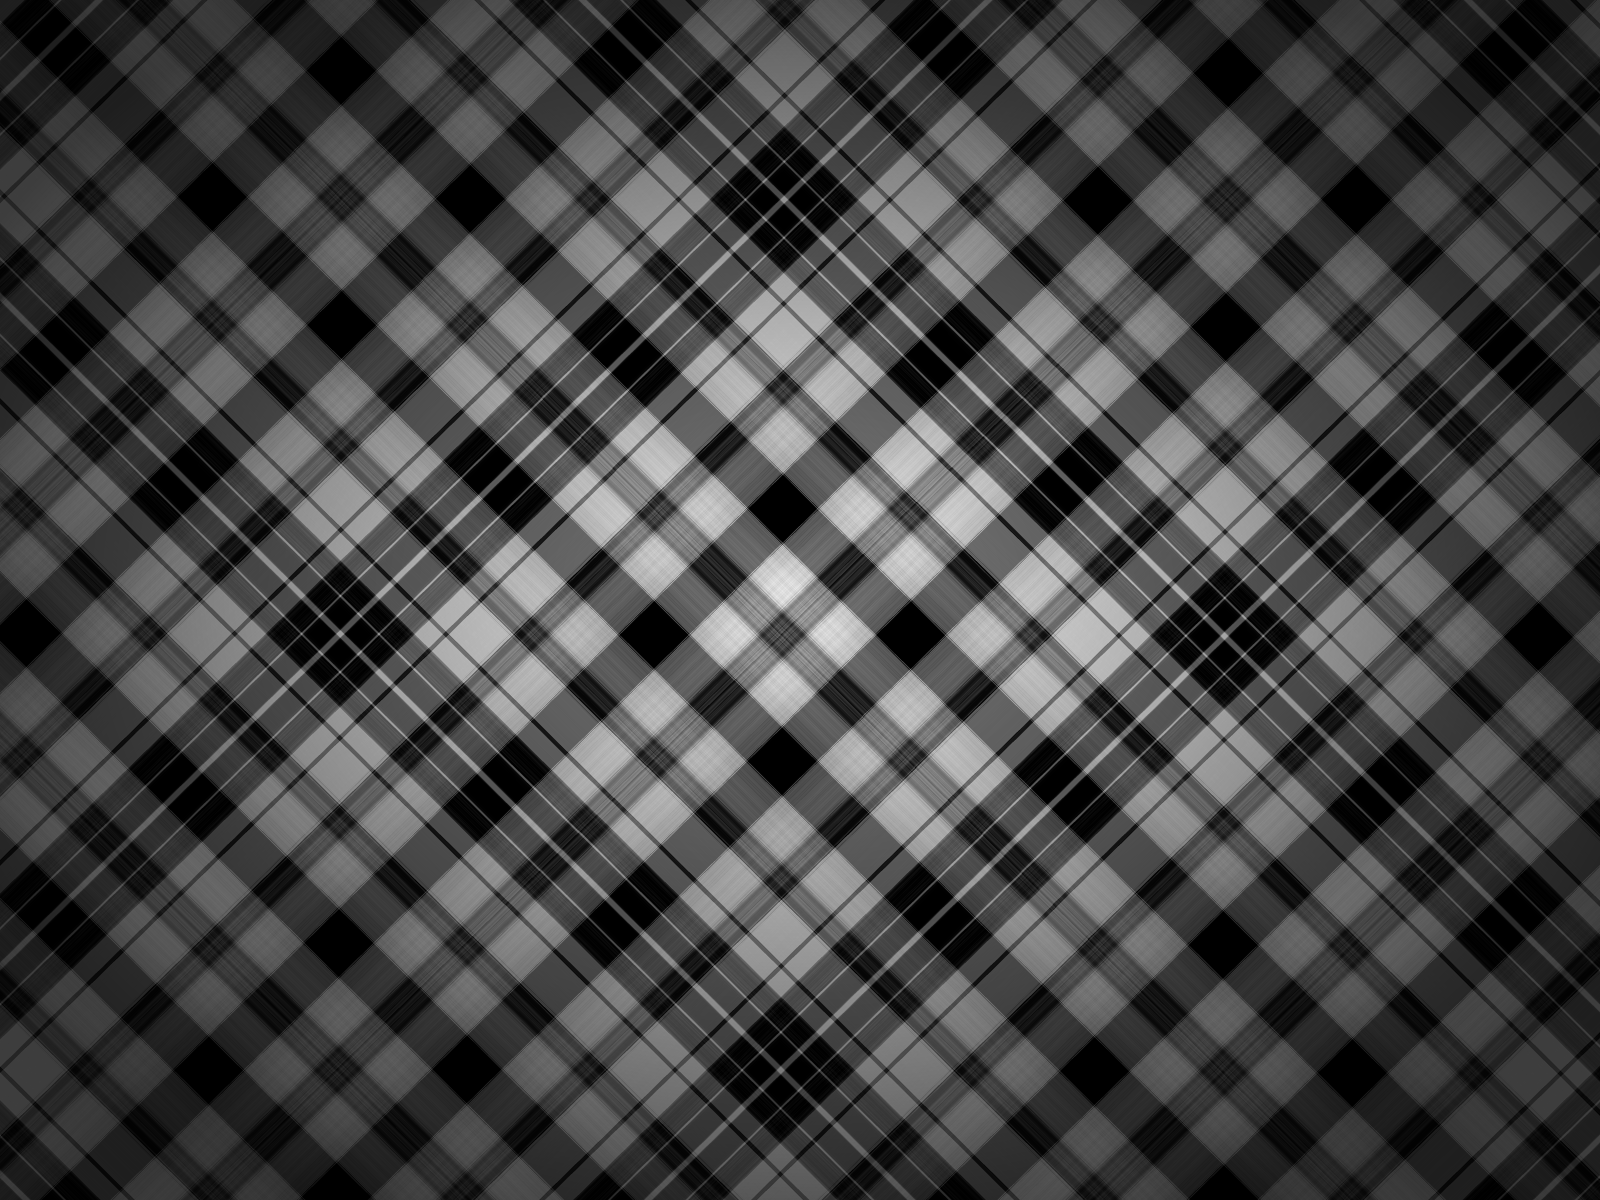 Pattern Desktop Wallpapers and Themes   Part 2 1600x1200